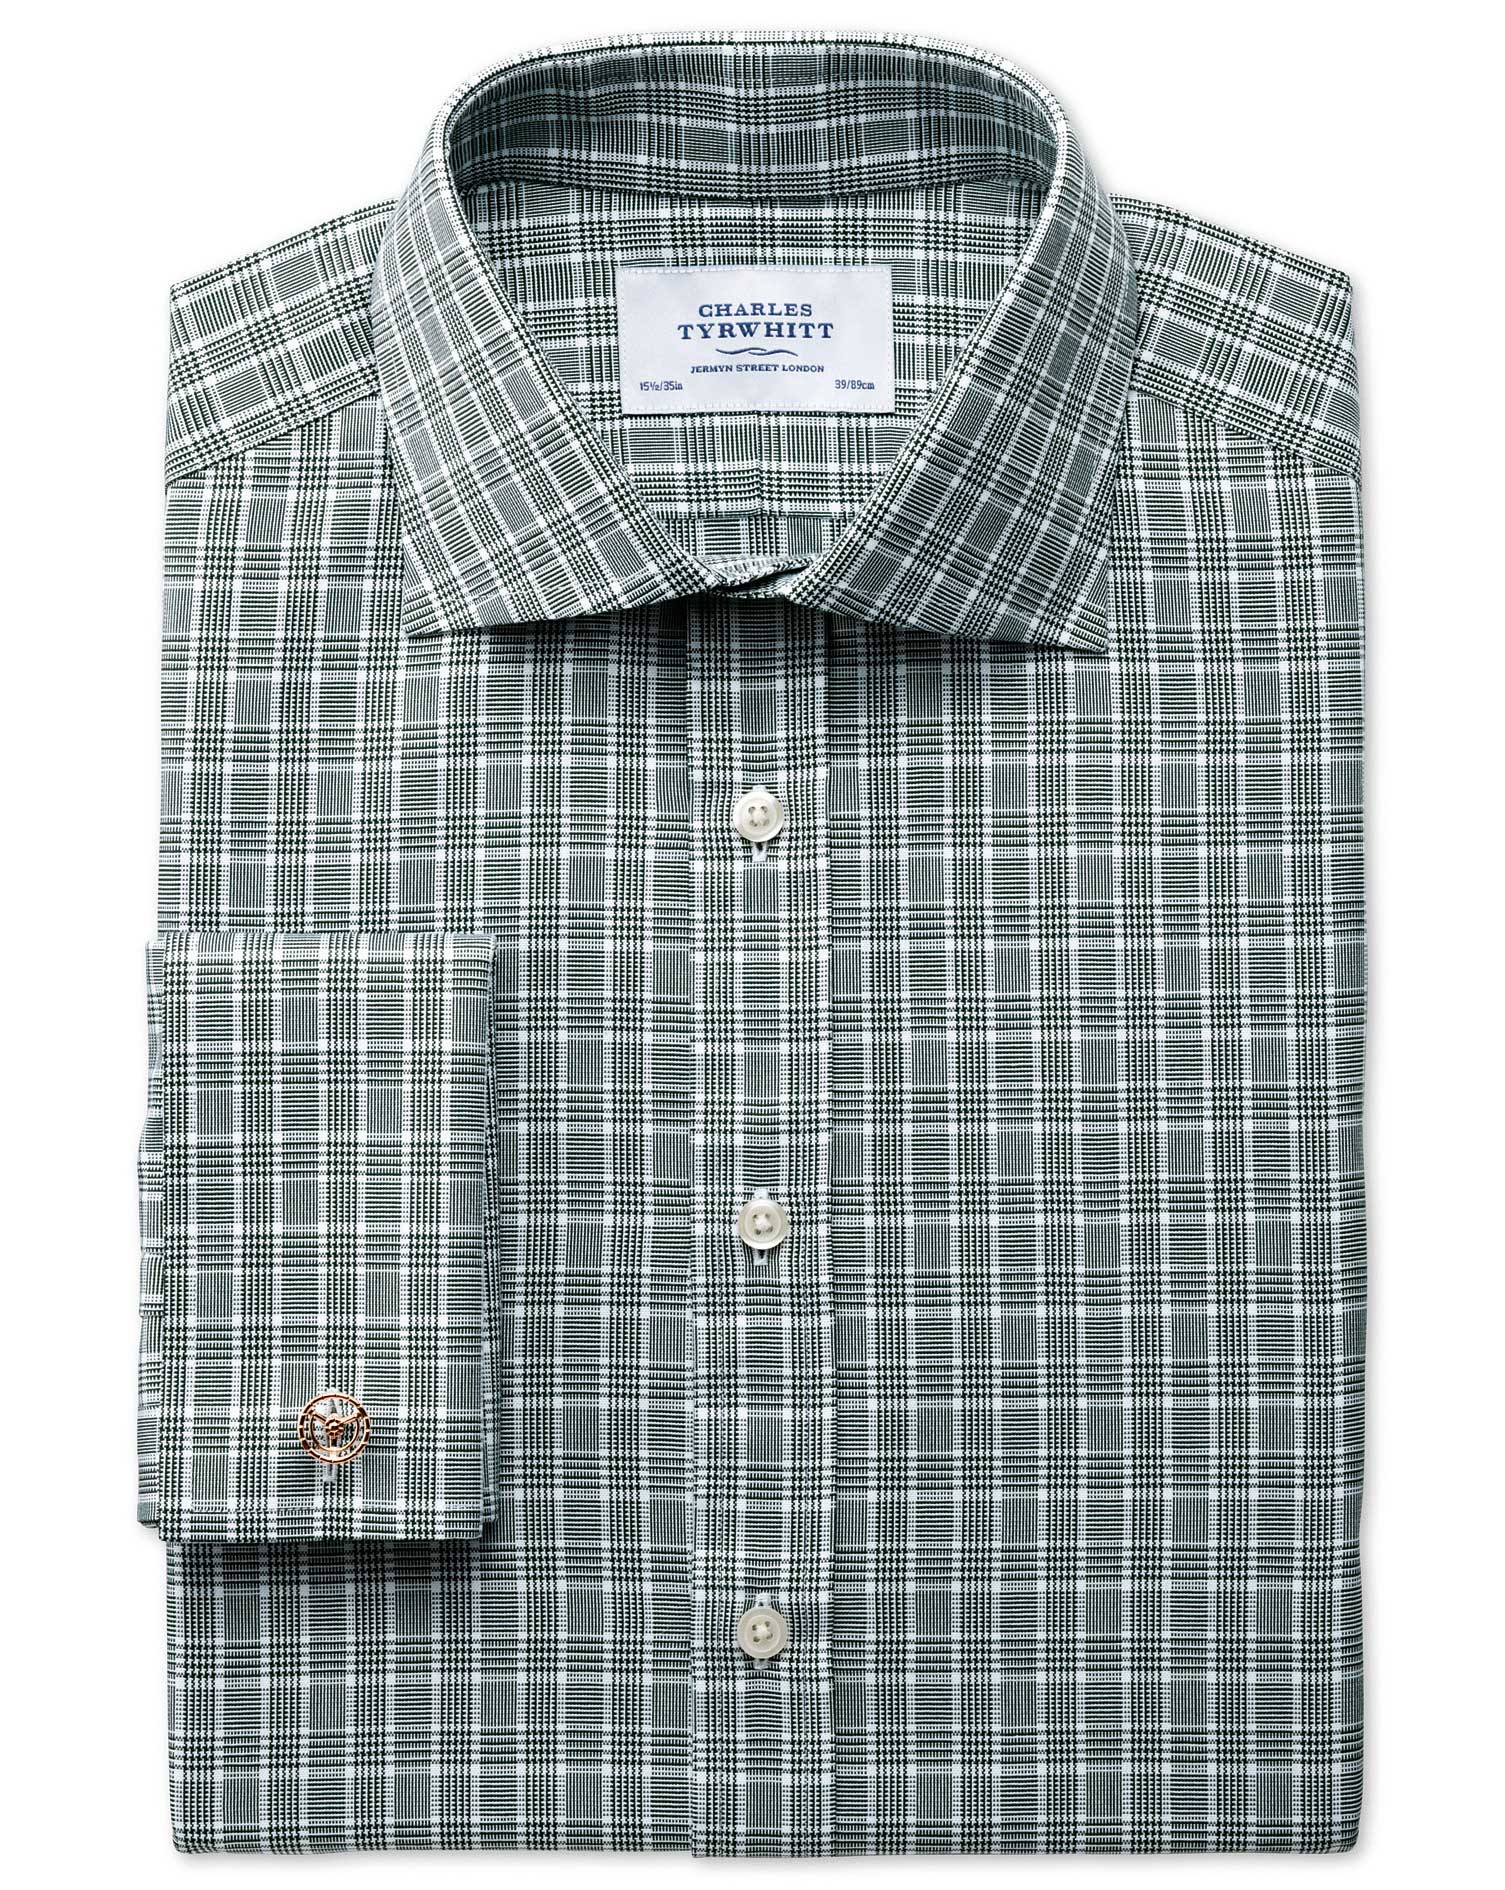 Extra Slim Fit Prince Of Wales Basketweave Green Cotton Formal Shirt Single Cuff Size 15/33 by Charl